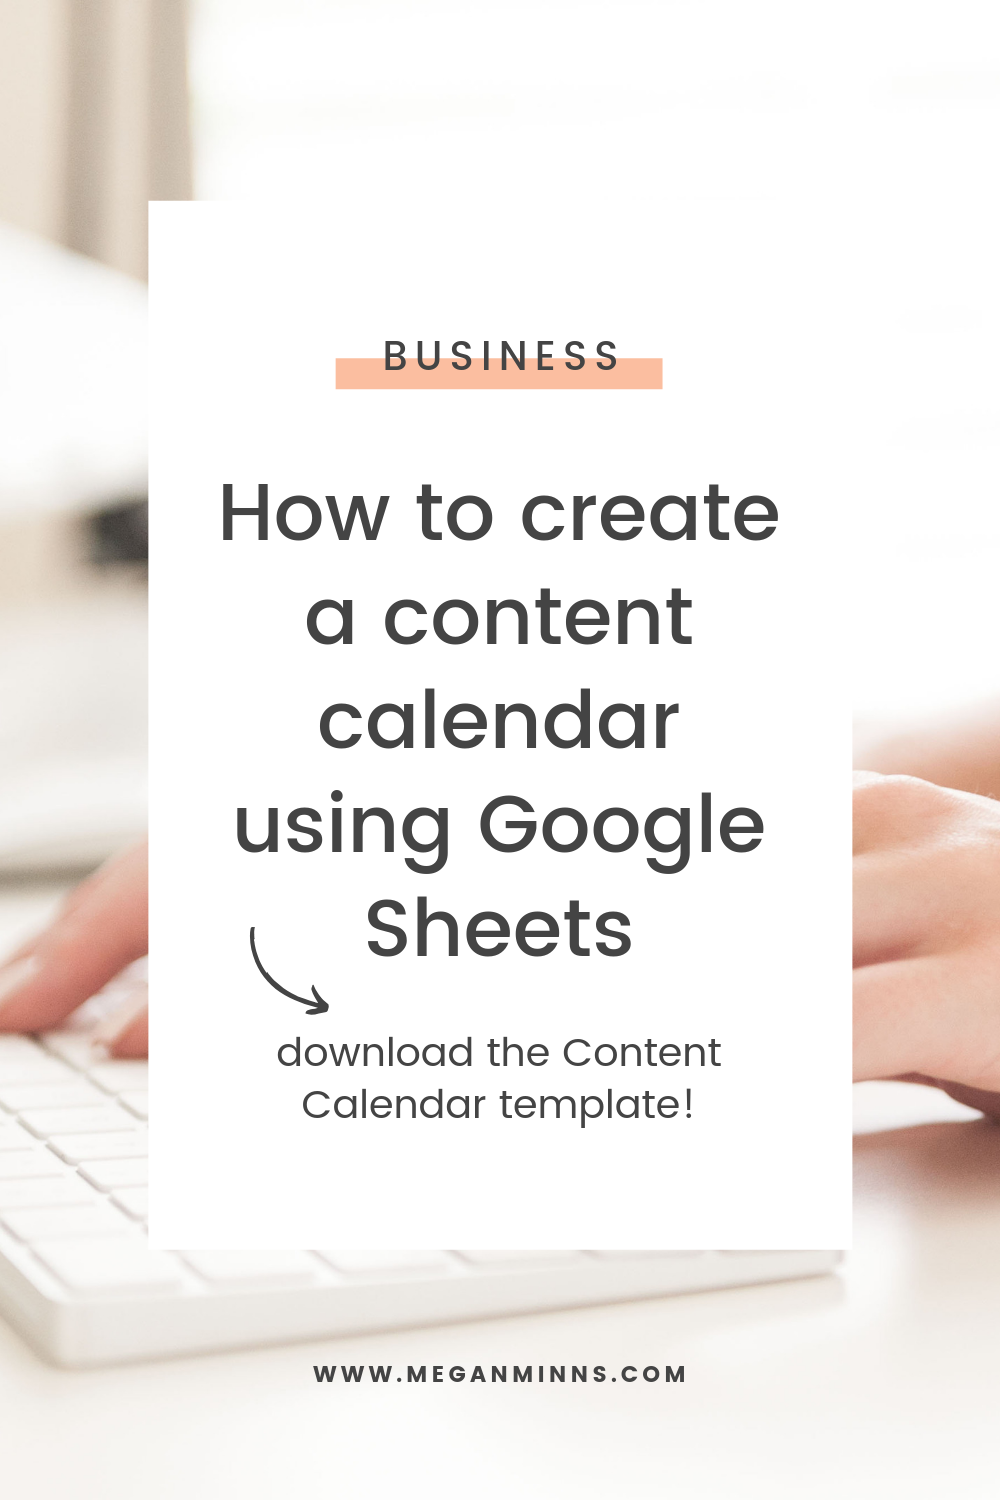 Have you been struggling to consistently plan content? Are you tracking every piece of content that you publish in one place? If you're feeling scattered and want to streamline how you plan content, and you want one easy, central place to do it all, watch this tutorial on creating a content calendar spreadsheet using Google Sheets! You'll learn my exact, easy process, and quickly get started and organized. Watch the full tutorial here: meganminns.com/blog/content-calendar-google-sheets